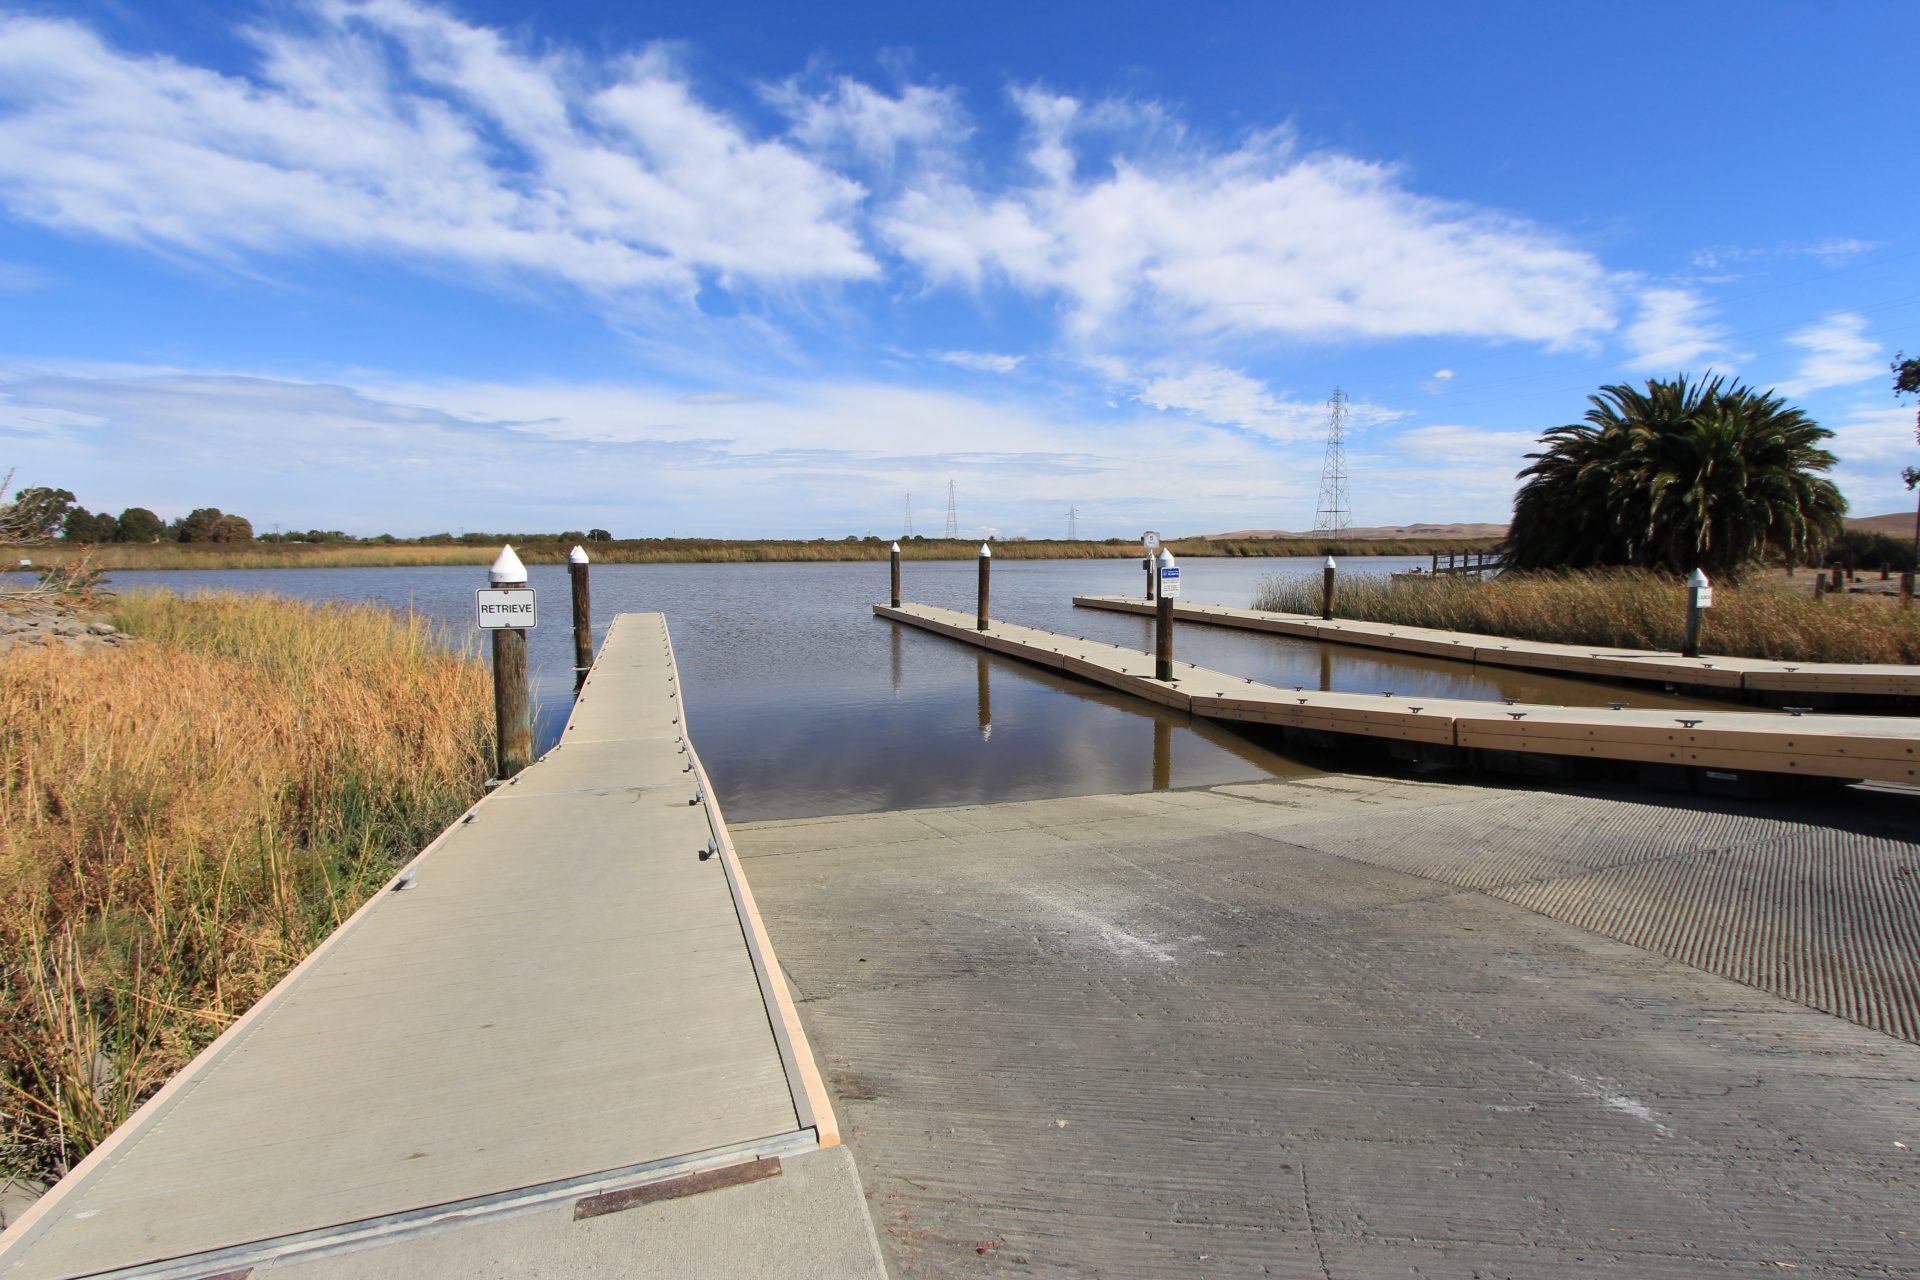 Looking down boat ramp to water